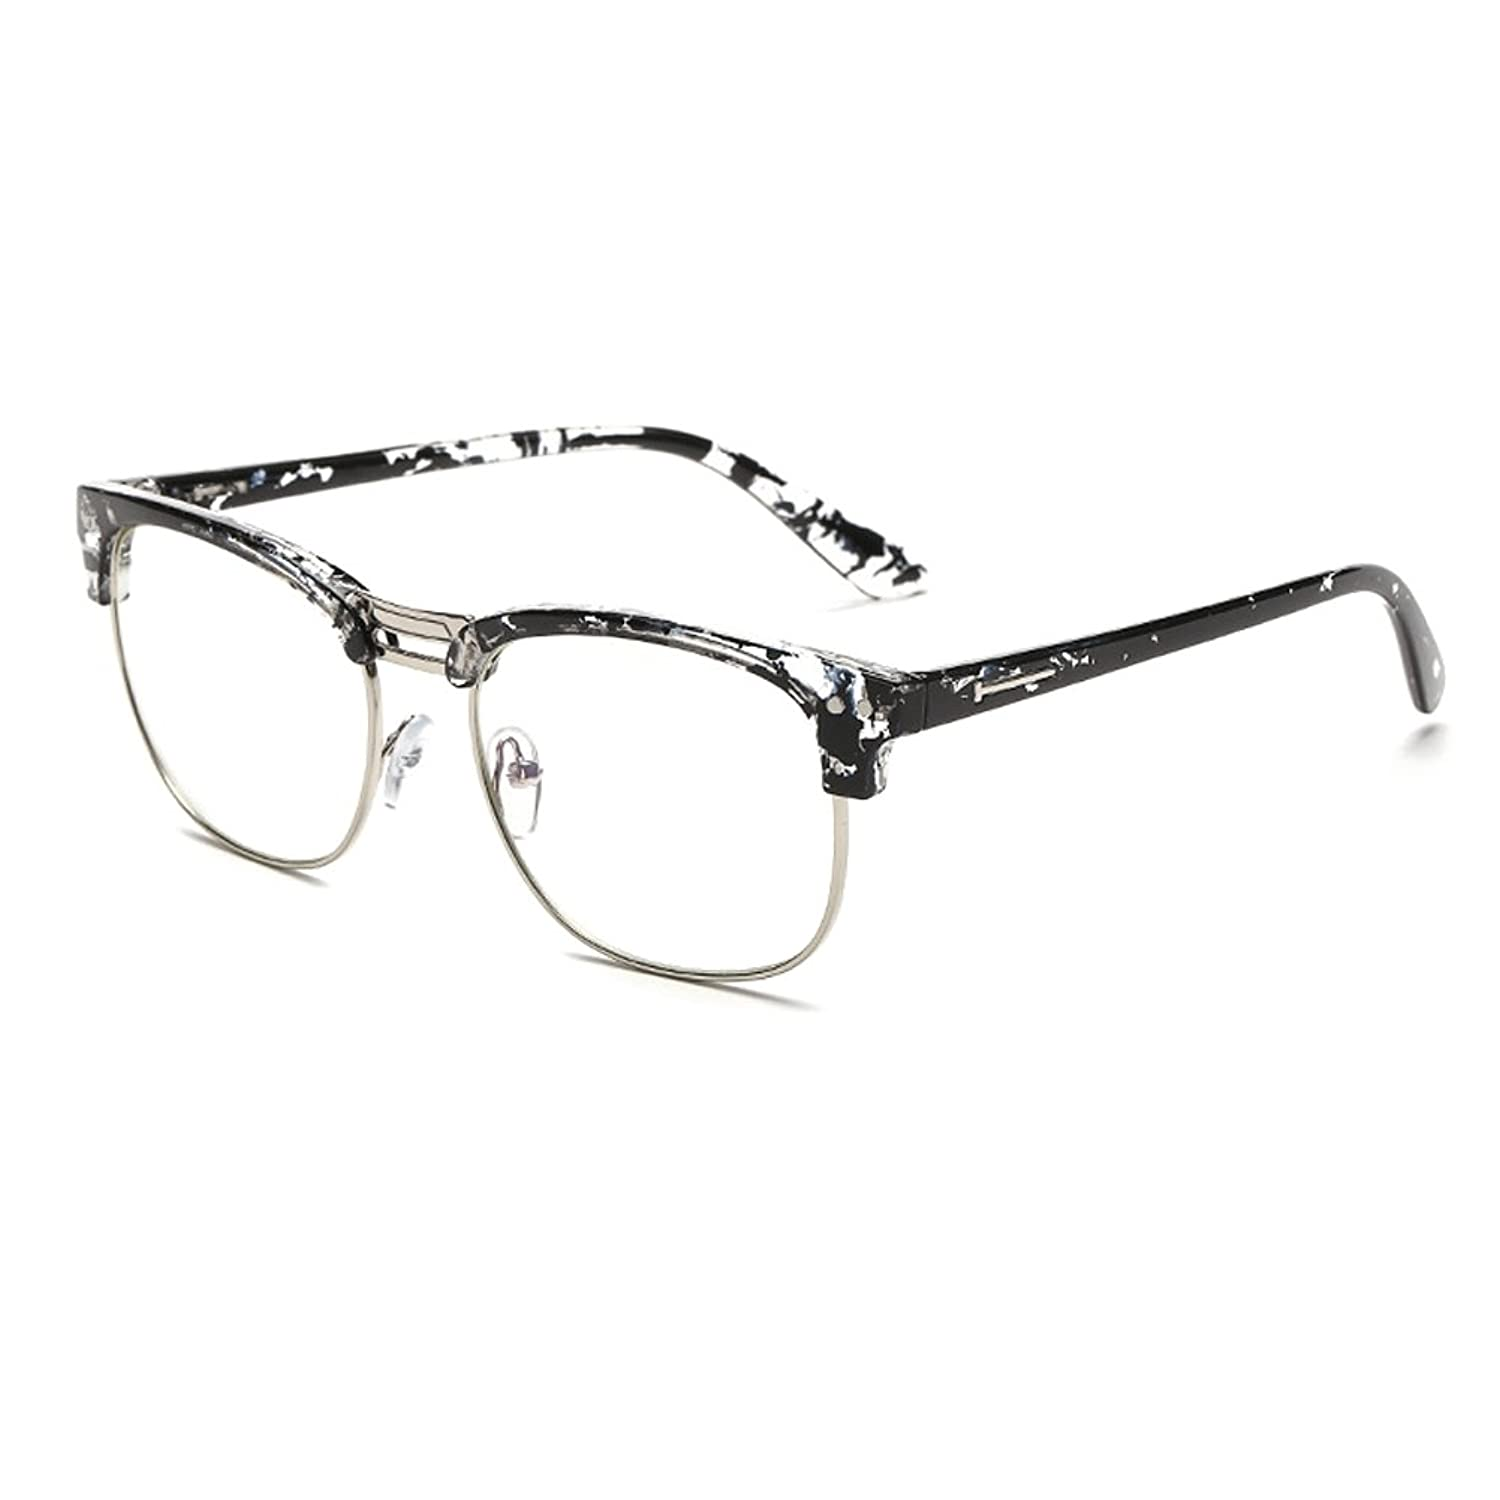 Zhhlinyuan 3pcs Fashion Cool Square Frame Unisex Men and Femmes Reading Glasses +1.00-+4.00 ZnW3n5